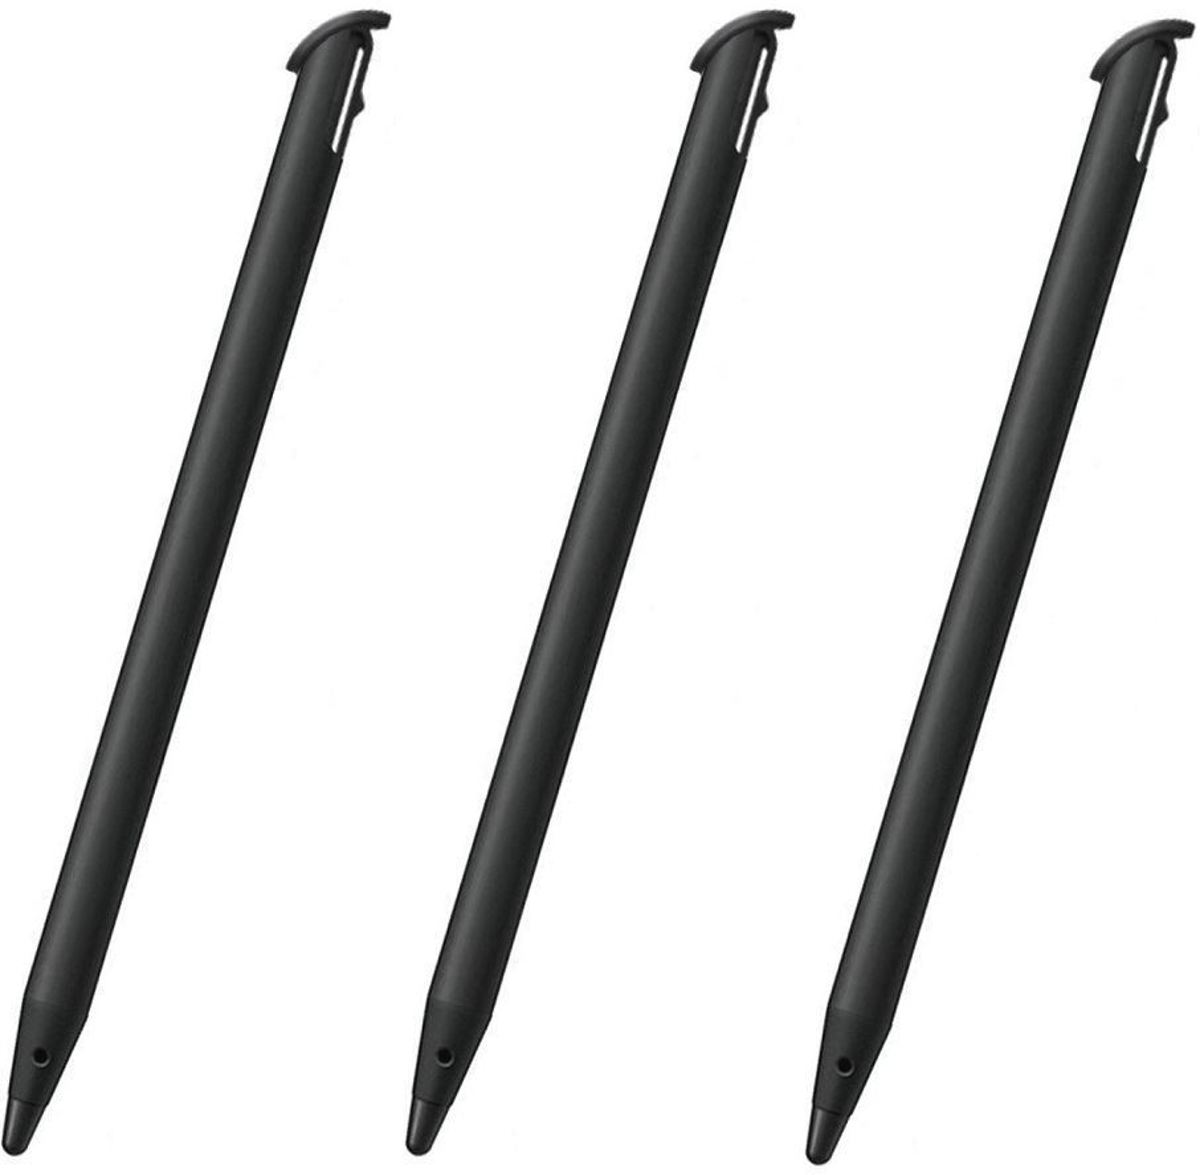 3x Stylus pen voor Nintendo New 3DS XL